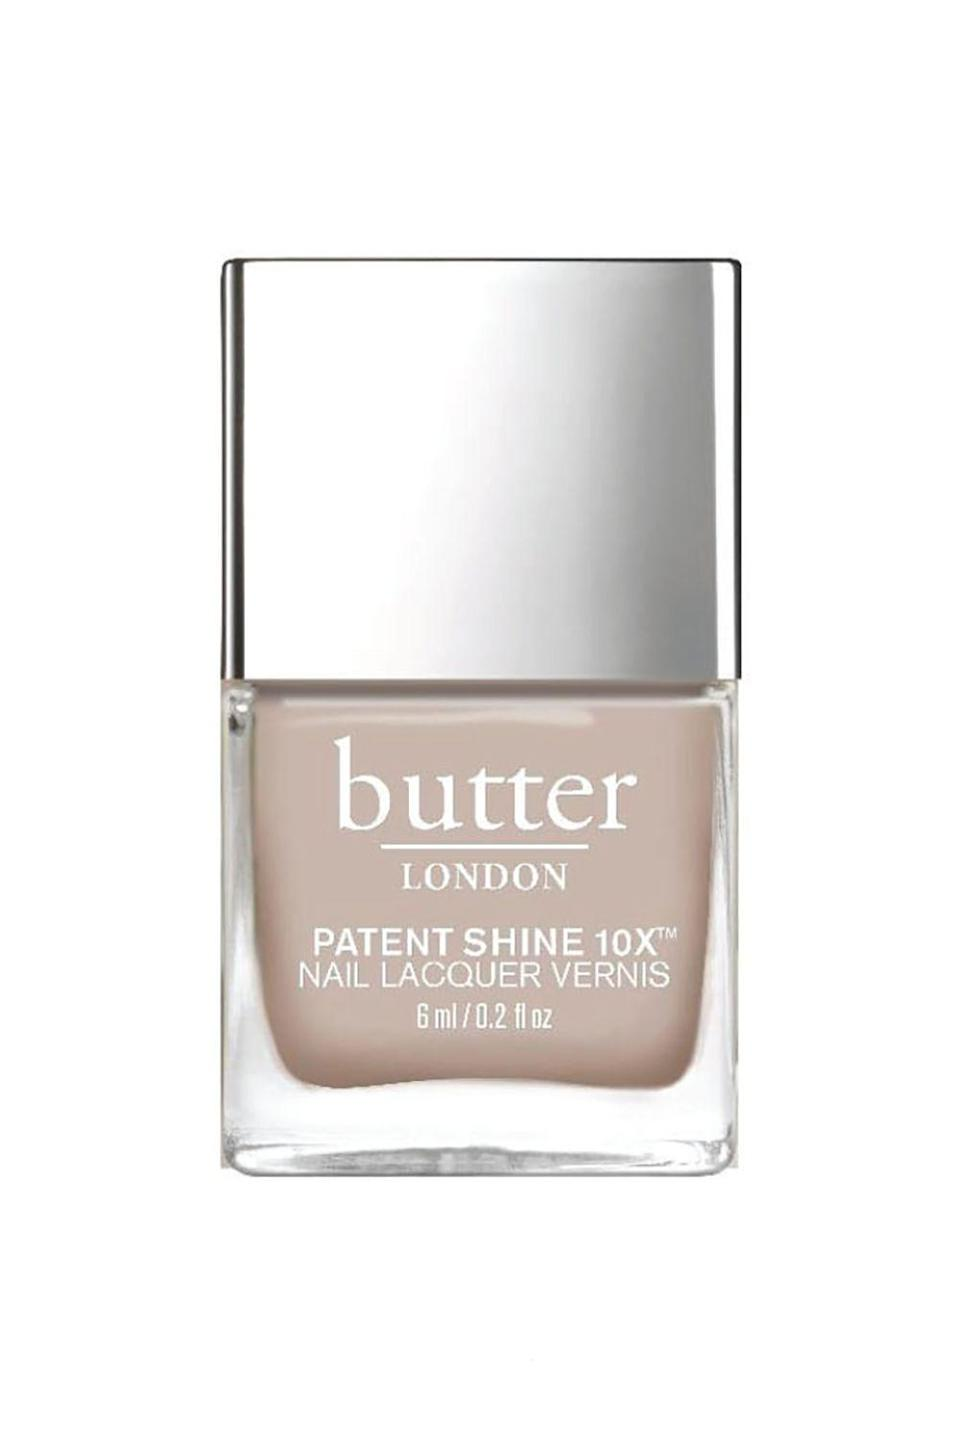 """<p><strong>butter LONDON Sandy Crème Nail Lacquer</strong></p><p>amazon.com</p><p><strong>$12.00</strong></p><p><a href=""""http://www.amazon.com/dp/B07R11N1Y6/?tag=syn-yahoo-20&ascsubtag=%5Bartid%7C10058.g.3965%5Bsrc%7Cyahoo-us"""" rel=""""nofollow noopener"""" target=""""_blank"""" data-ylk=""""slk:SHOP IT"""" class=""""link rapid-noclick-resp"""">SHOP IT</a></p><p>This timeless, sandy neutral will carry you through all seasons and complement every #OOTD. </p>"""